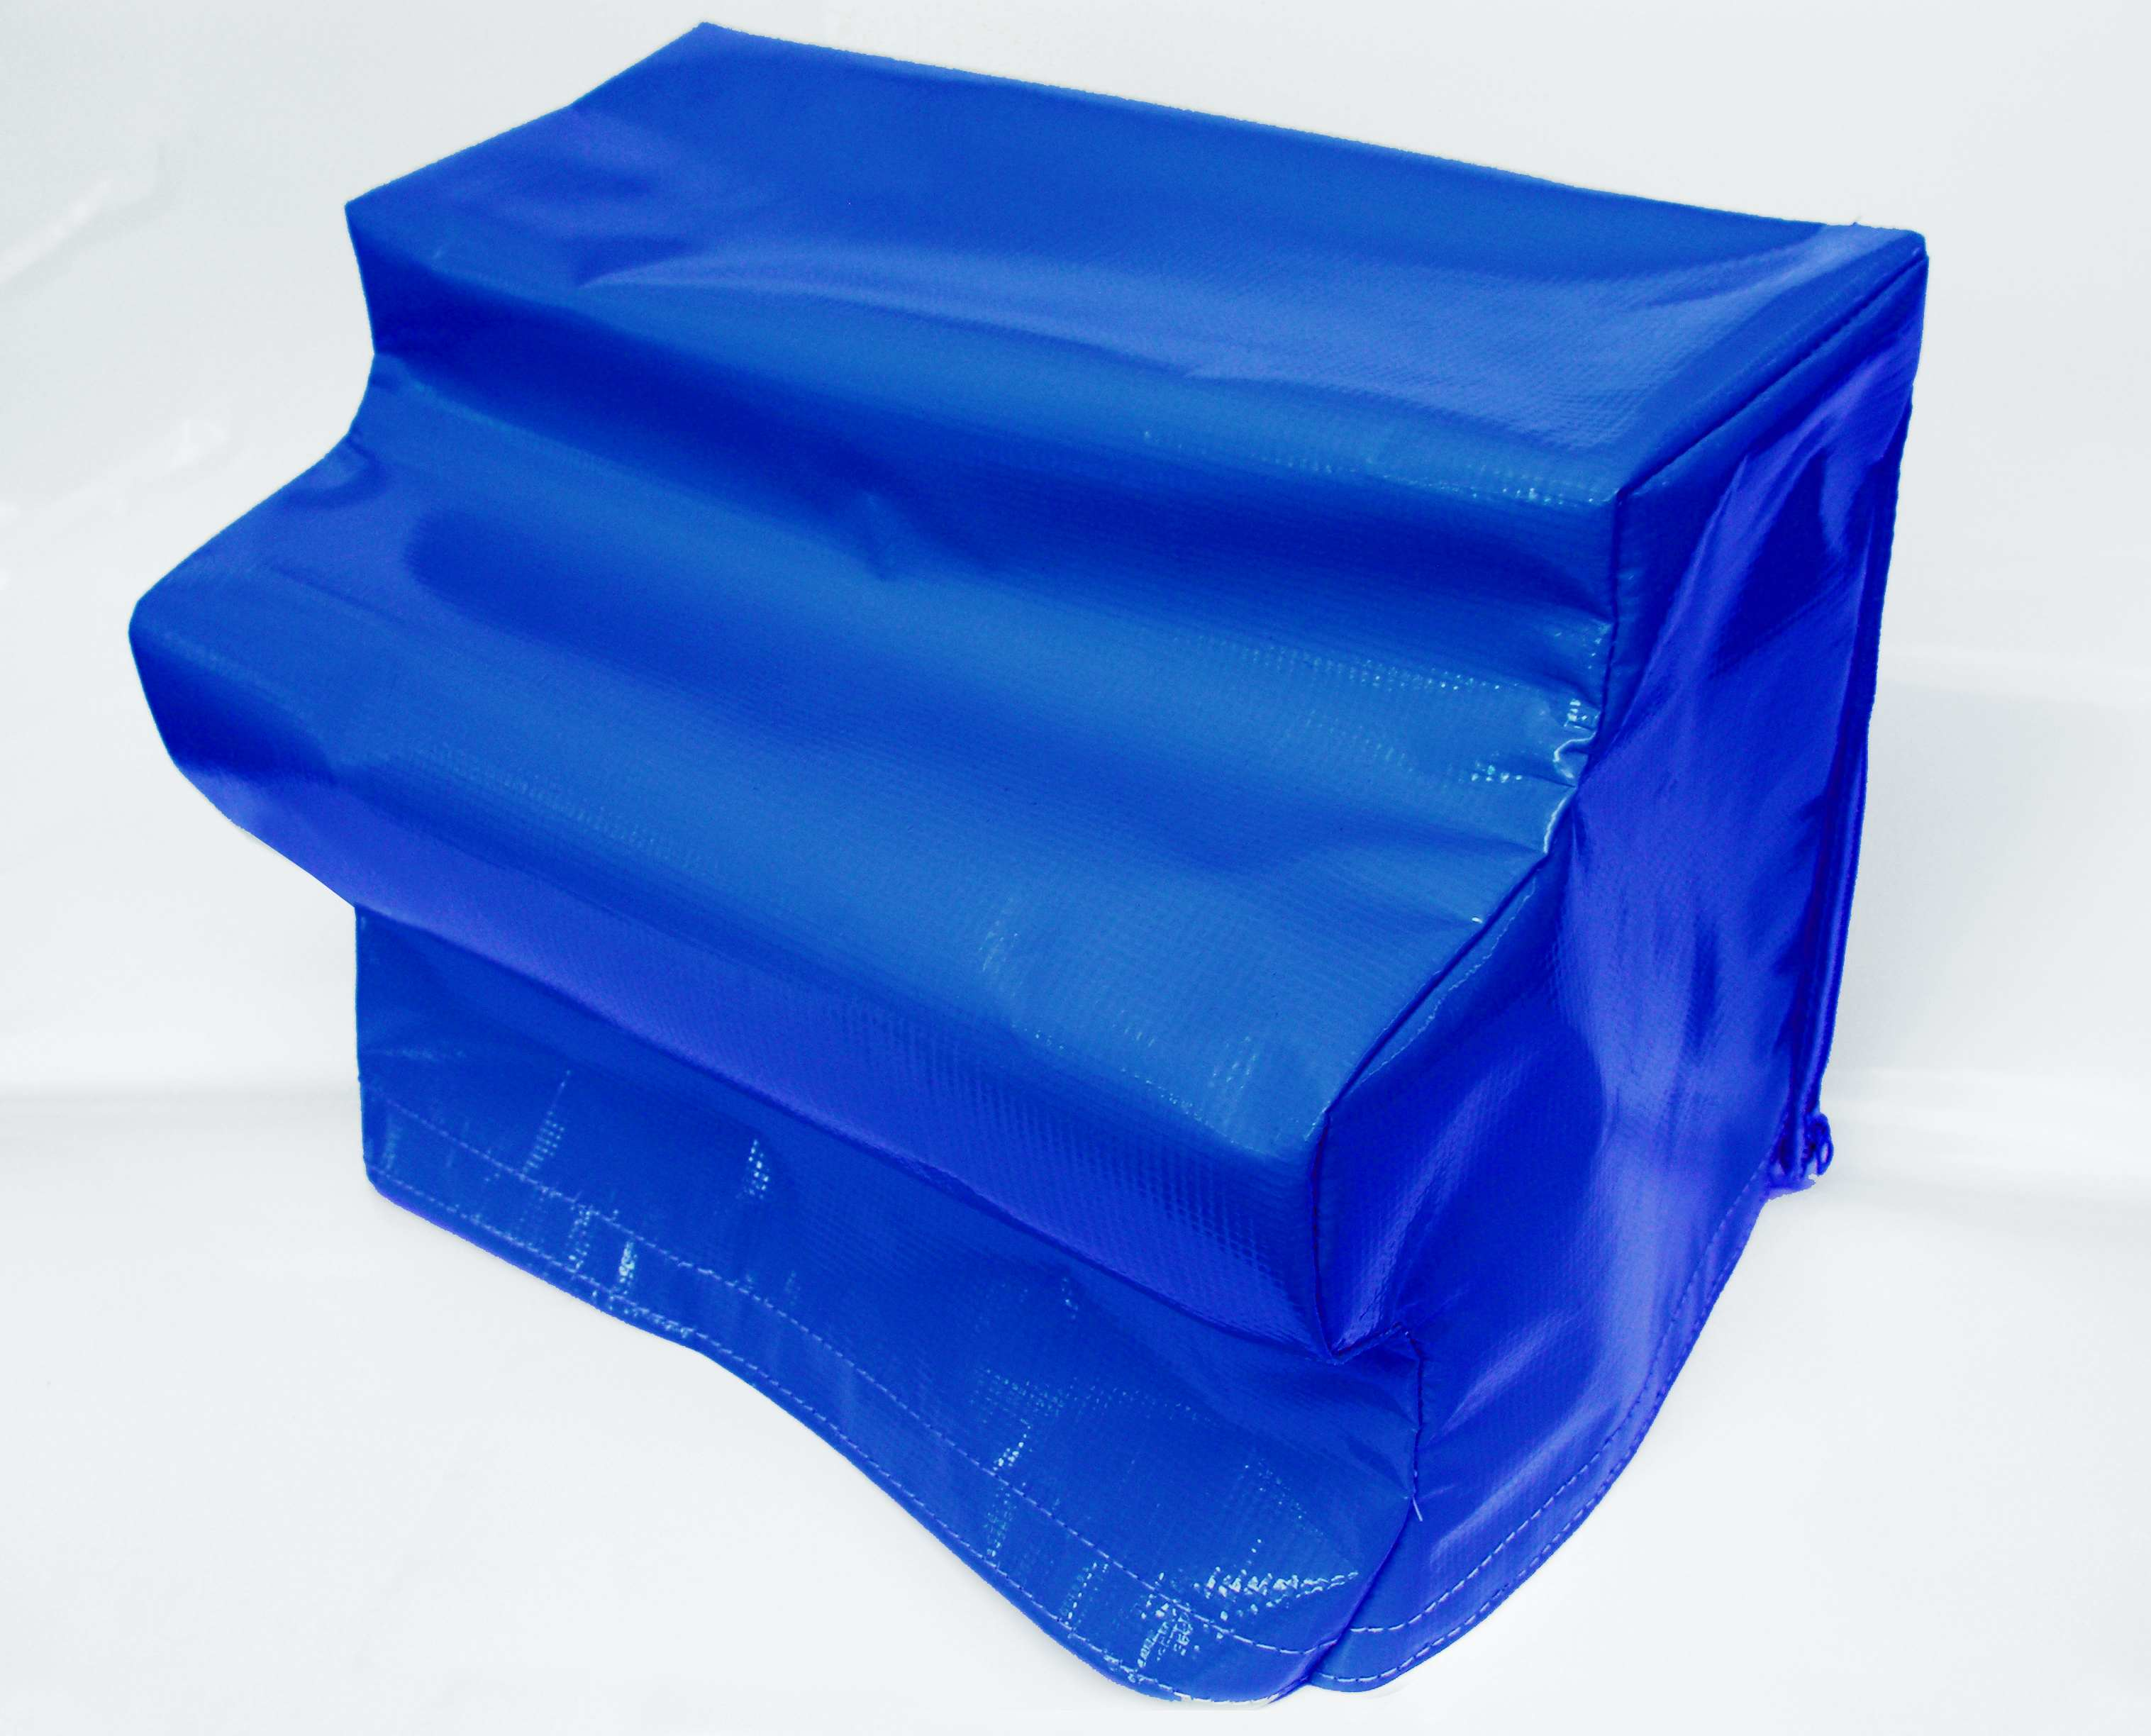 "VINYL COATED NYLON EQUIPMENT COVERS 48"" x 48"" x 36"""